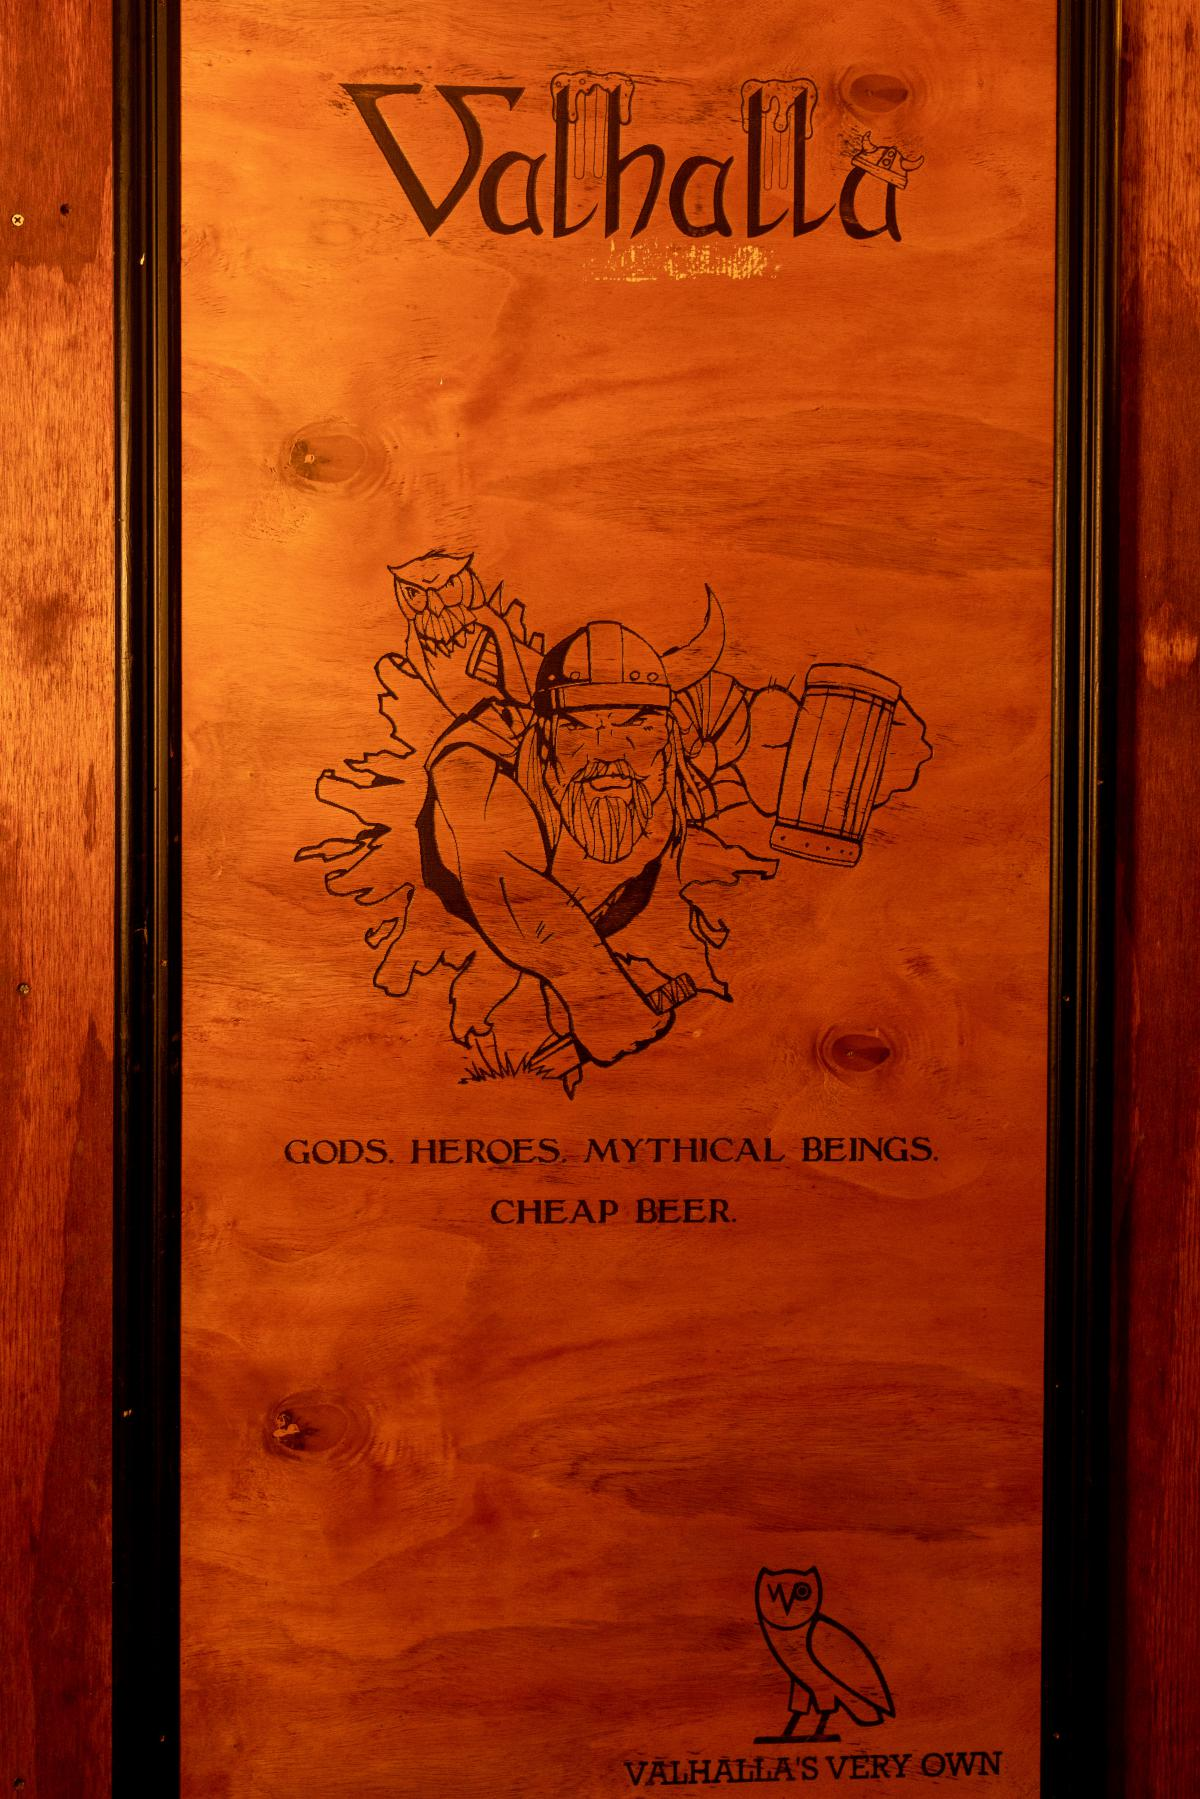 """Vertical picture of a drawing of a Viking inside the graduate student bar, Valhalla. The writing below the drawing says """"Gods, Heroes, Mythical Beings, Cheap Beer."""""""